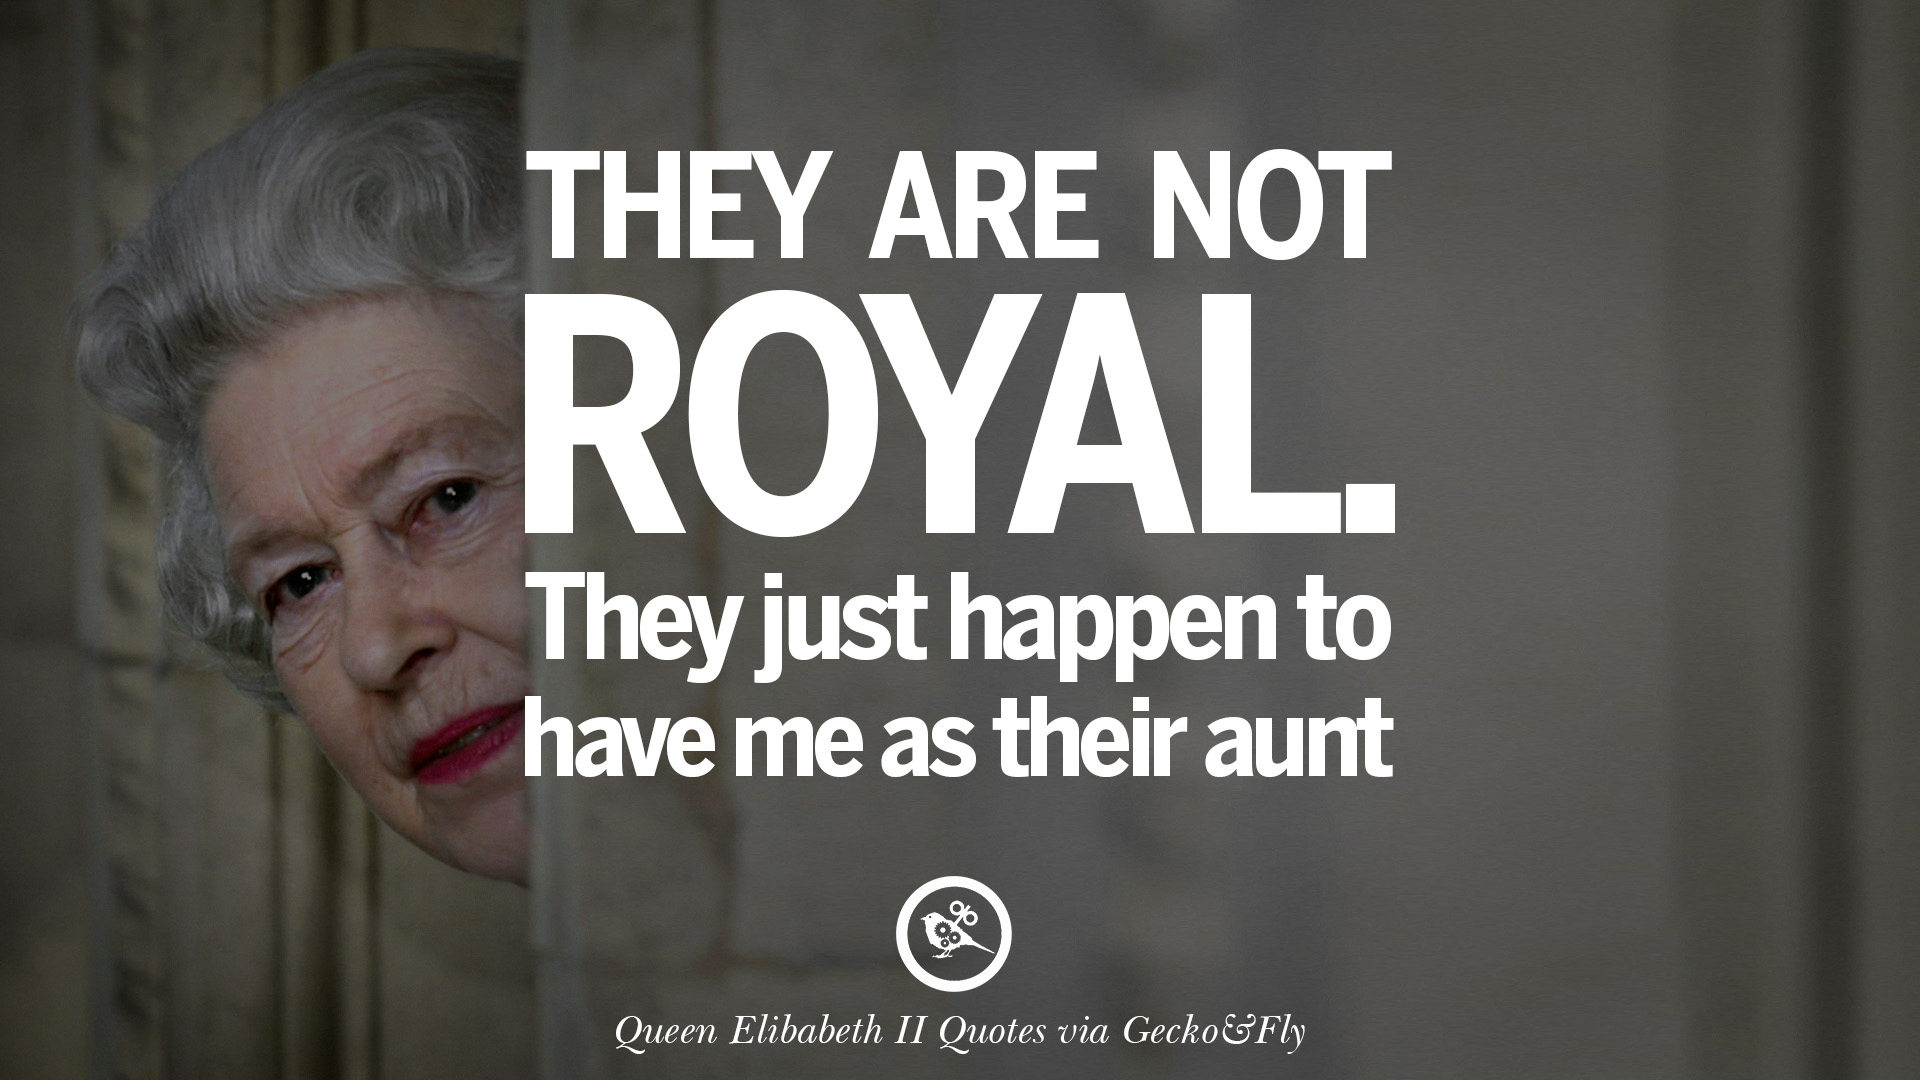 Apollo 13 Quotes Pretty 13 majestic quotes & 80 facts on queen elizabeth ii on love, grief